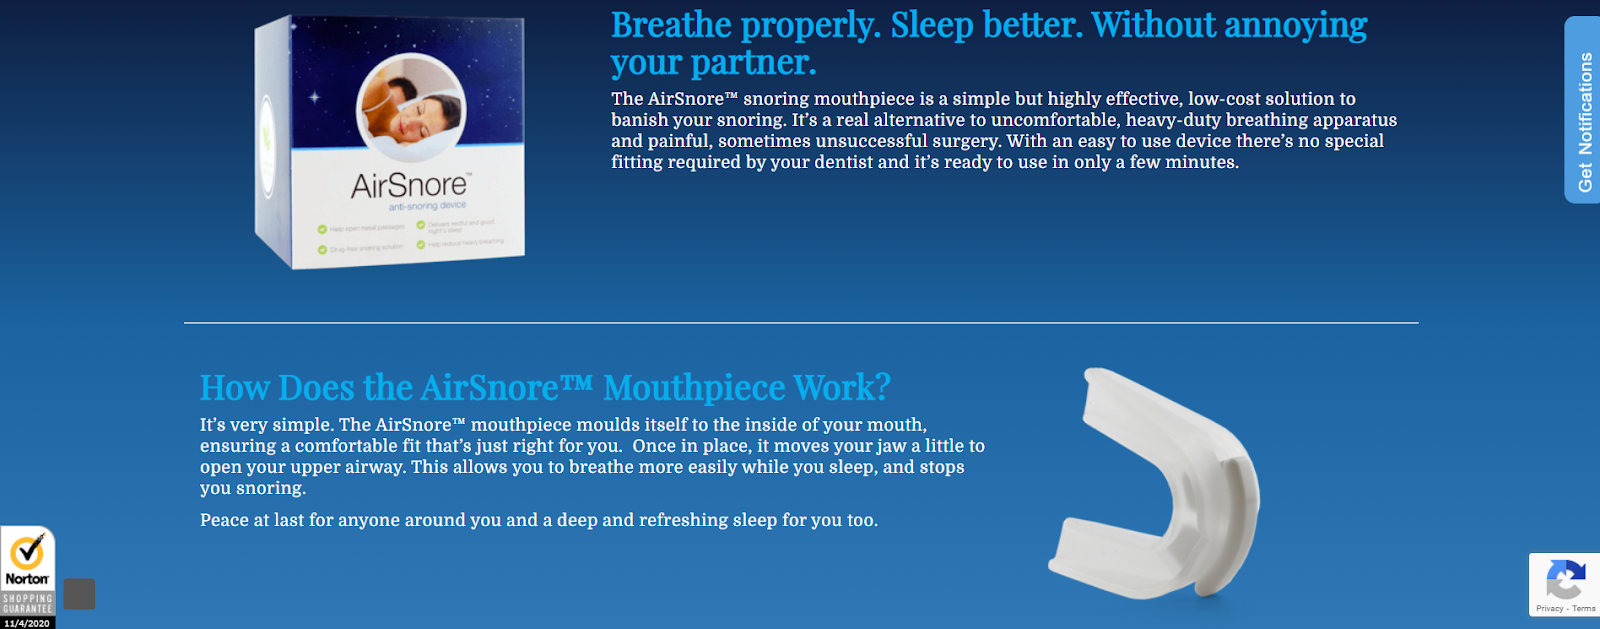 AirSnore-products